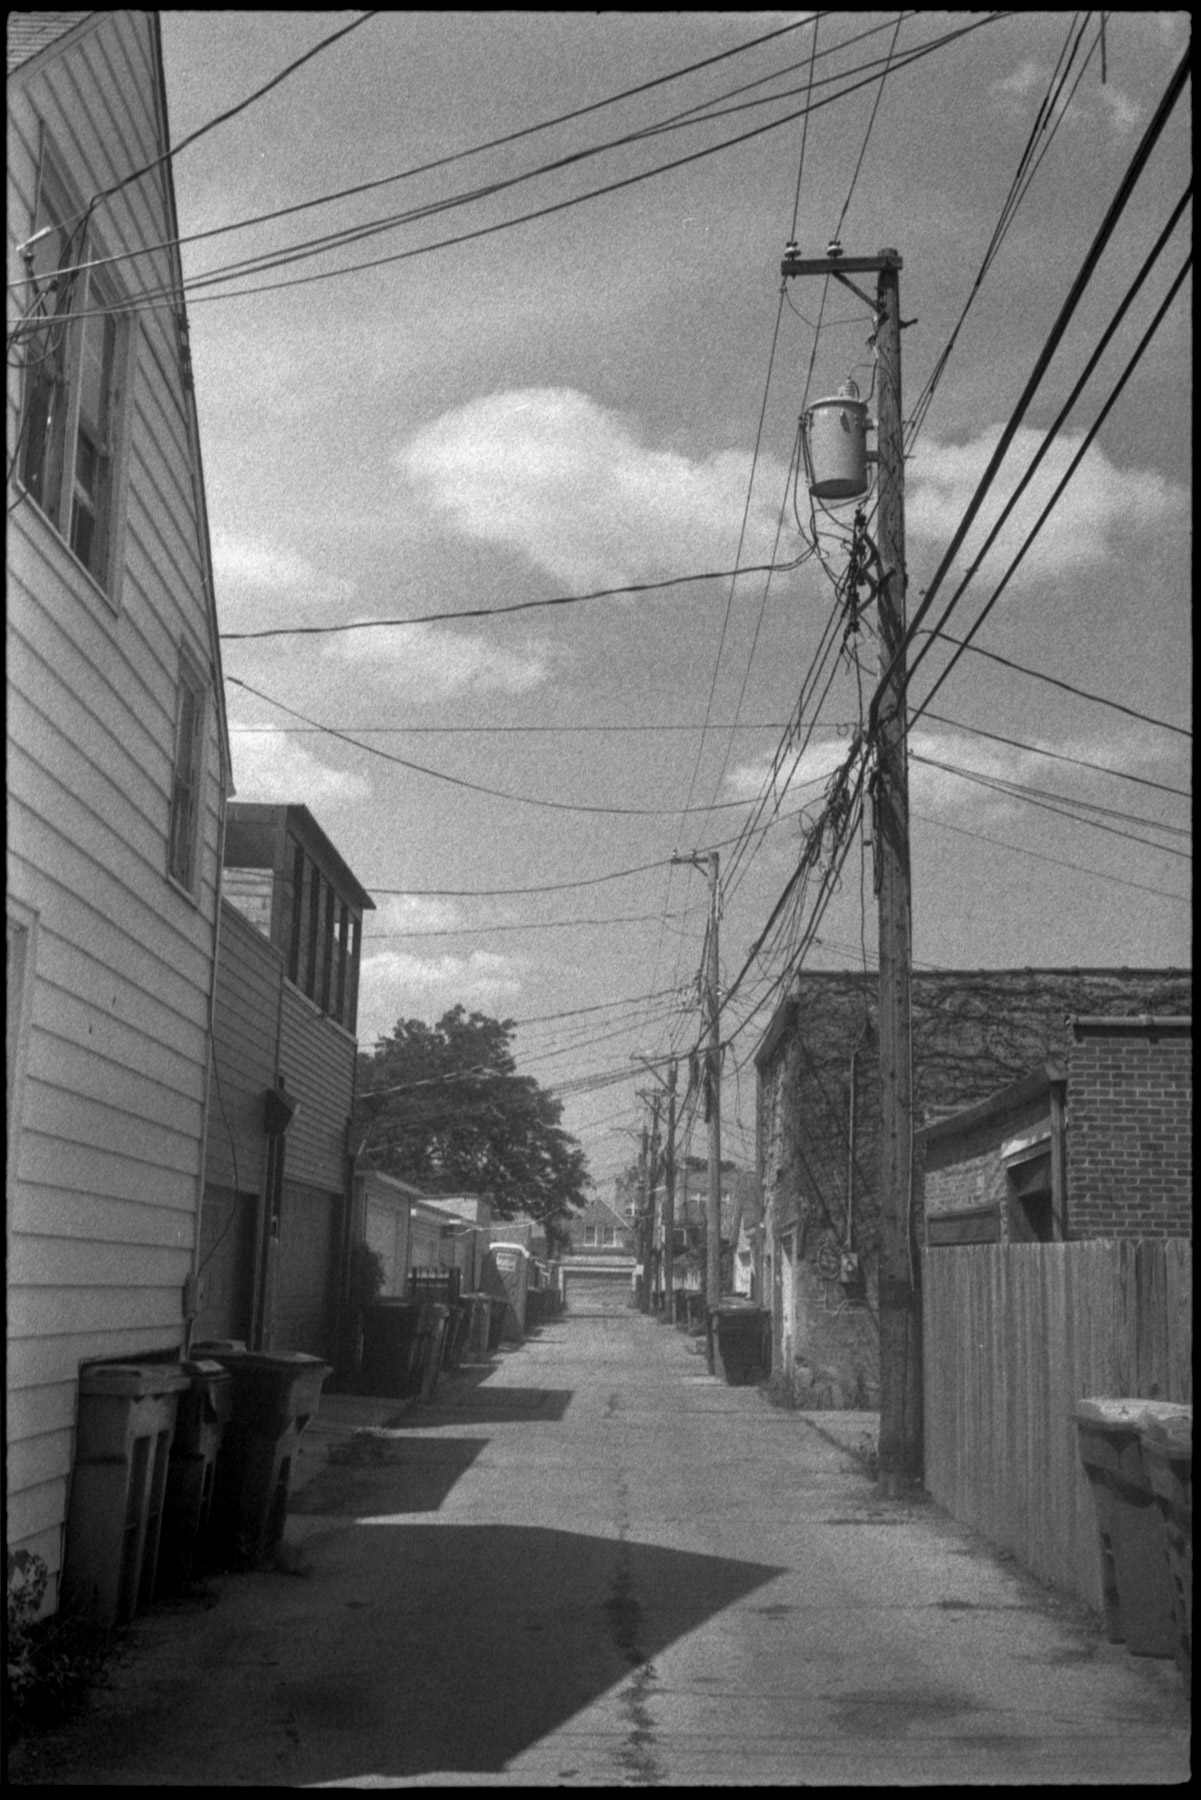 Ilford HP5 400 35mm film shot by Luis Mendoza (@luismendozamx) on the Olympus 35SP